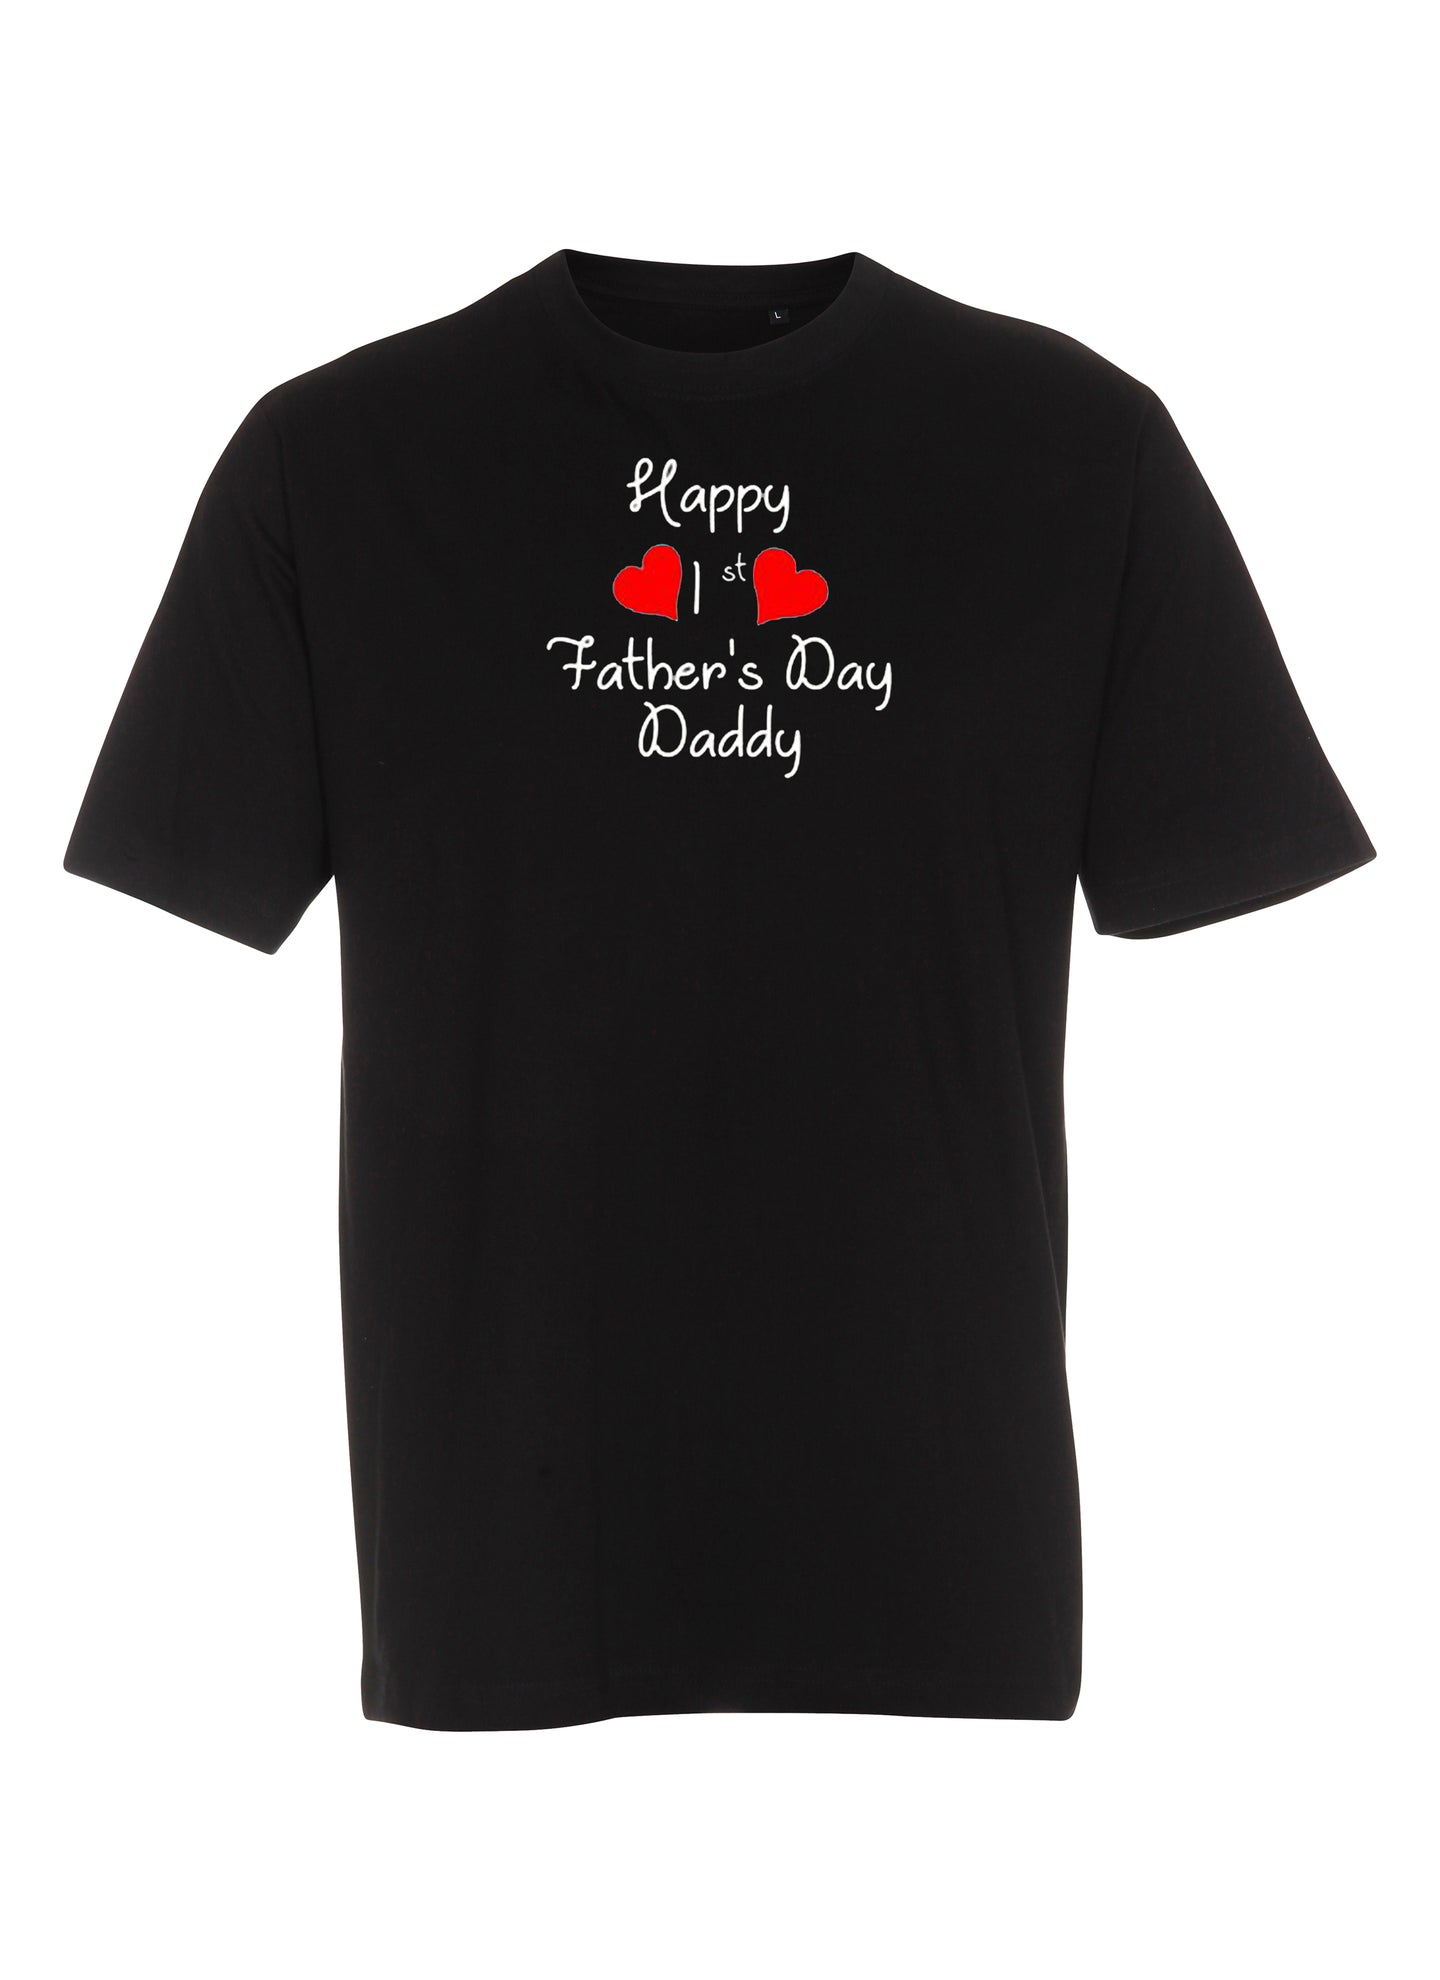 Happy 1st Father's day - Daddy (børne t-shirt)